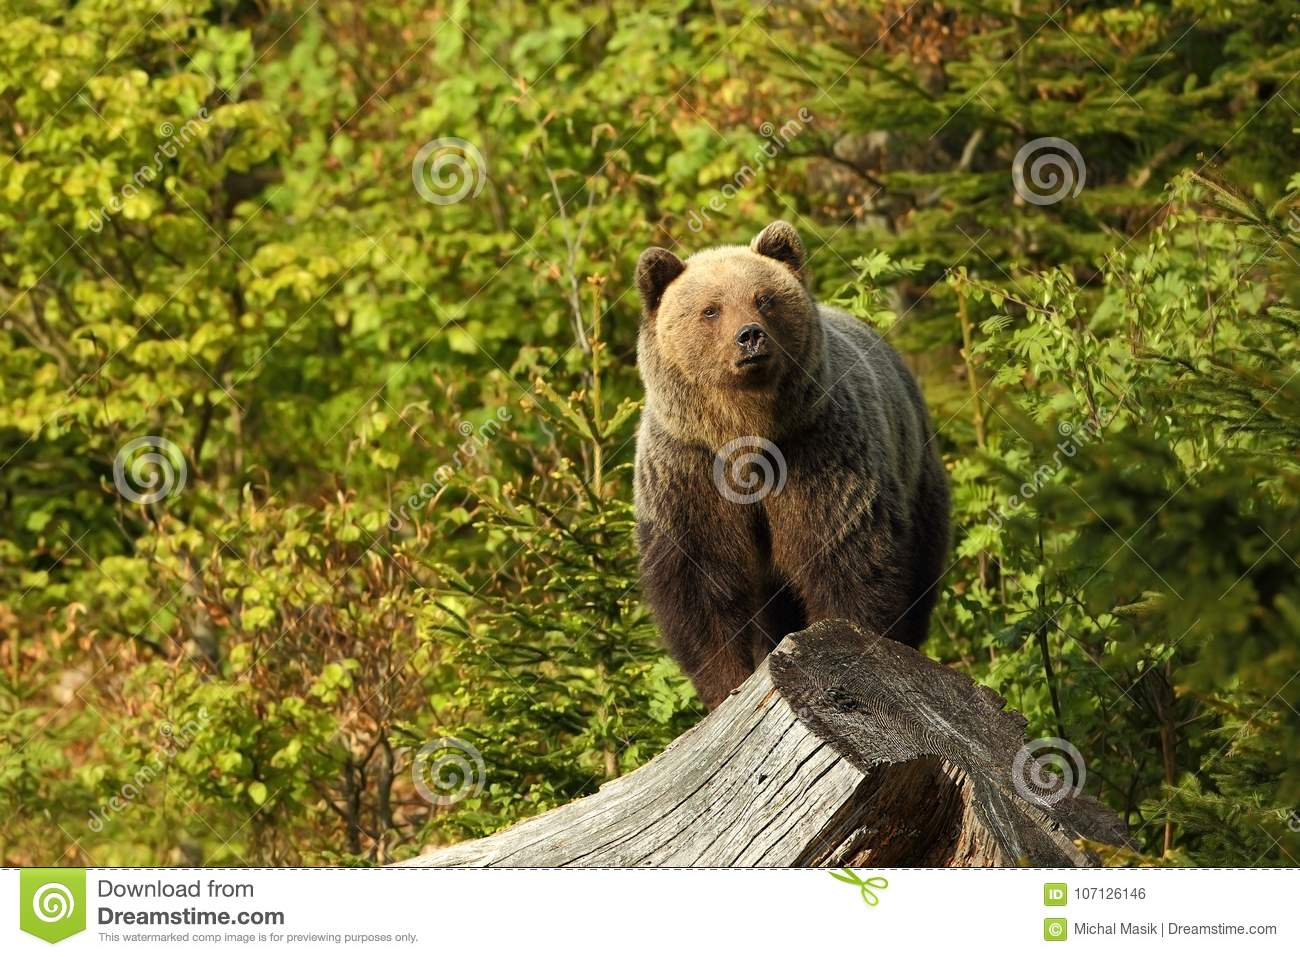 Ursus arctos. Brown bear. The photo was taken in Slovakia.